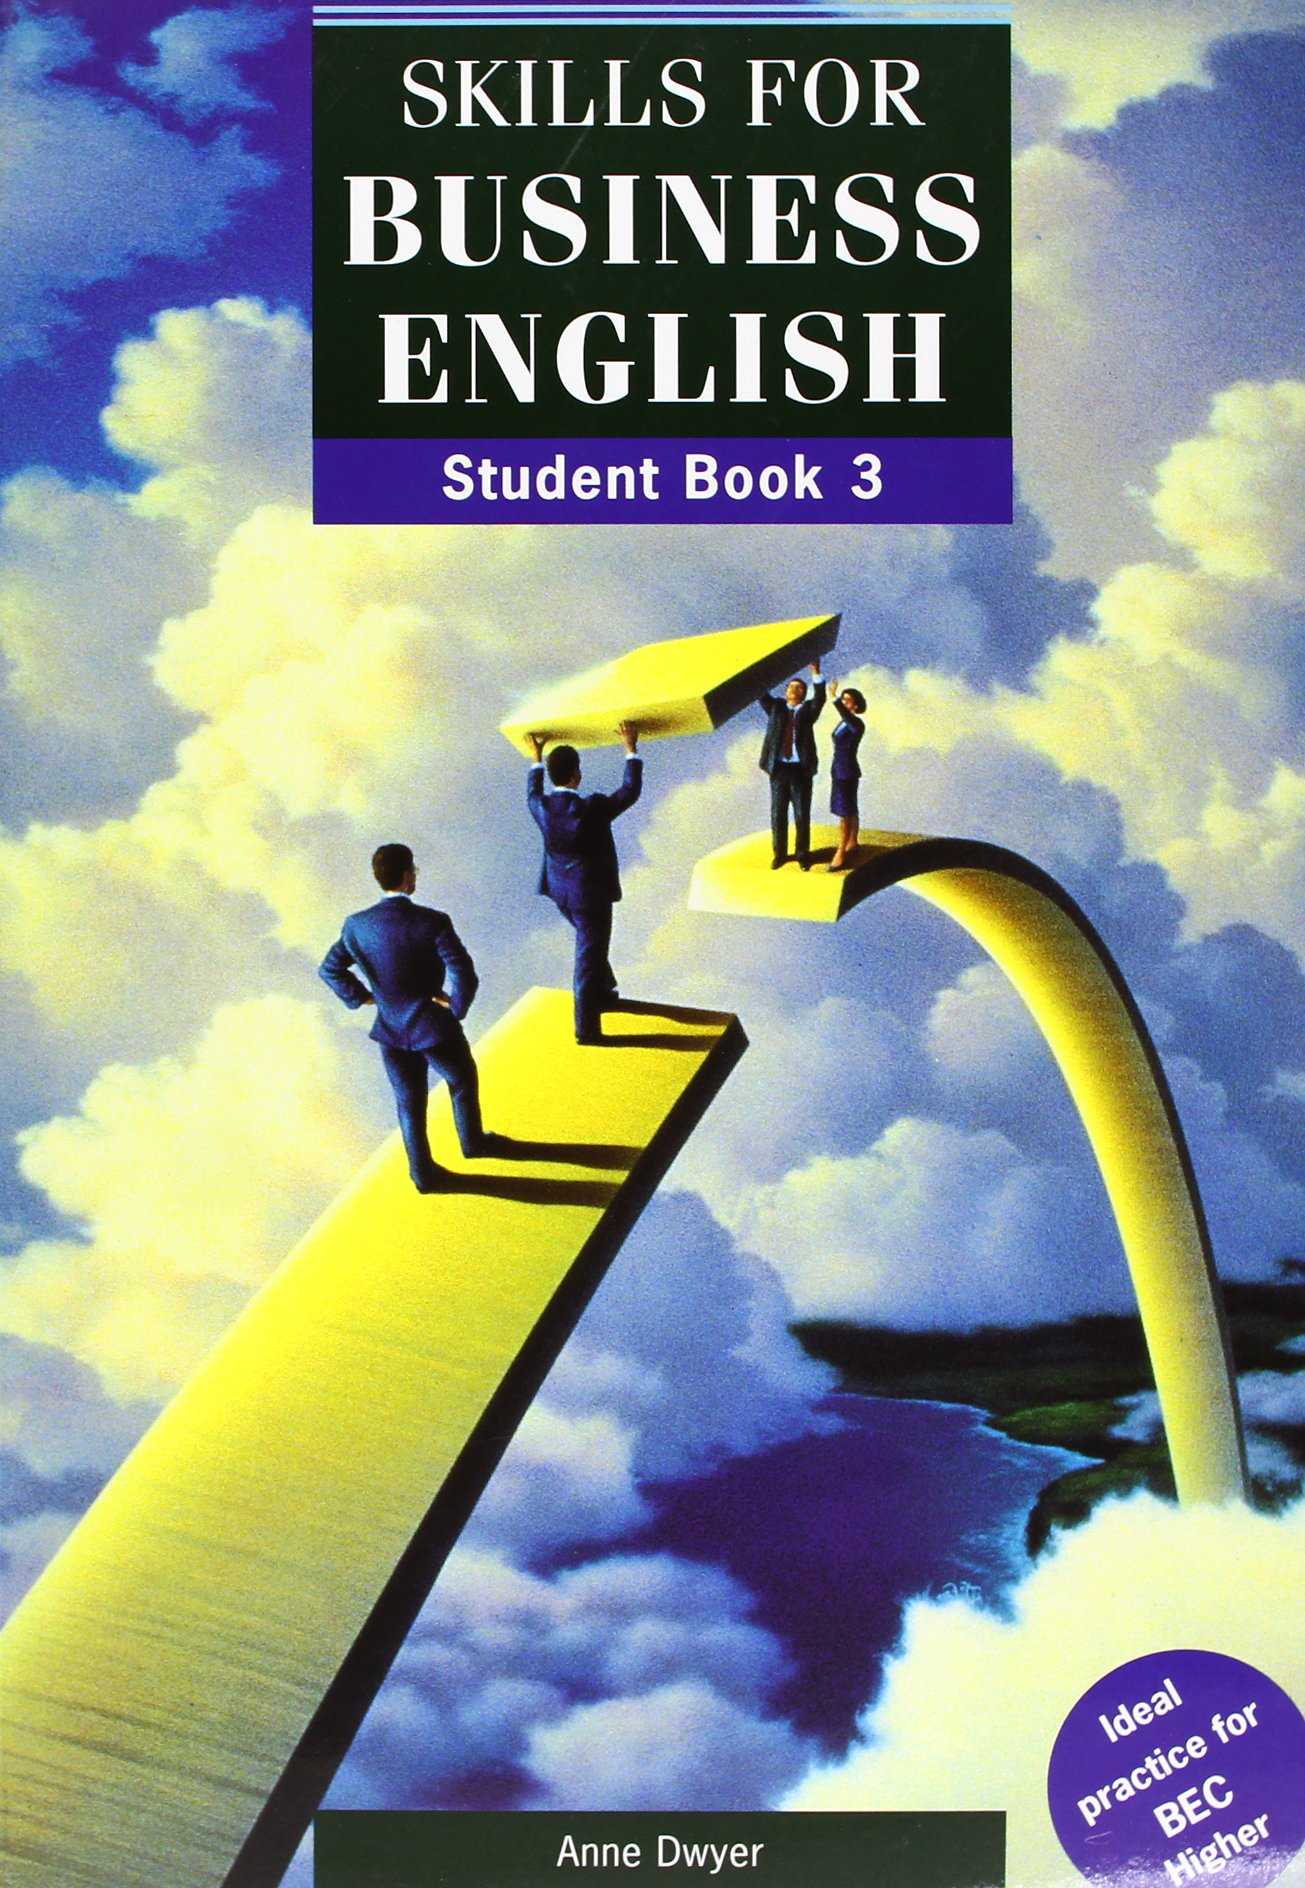 Skills for Business English 3 Student Book pdf